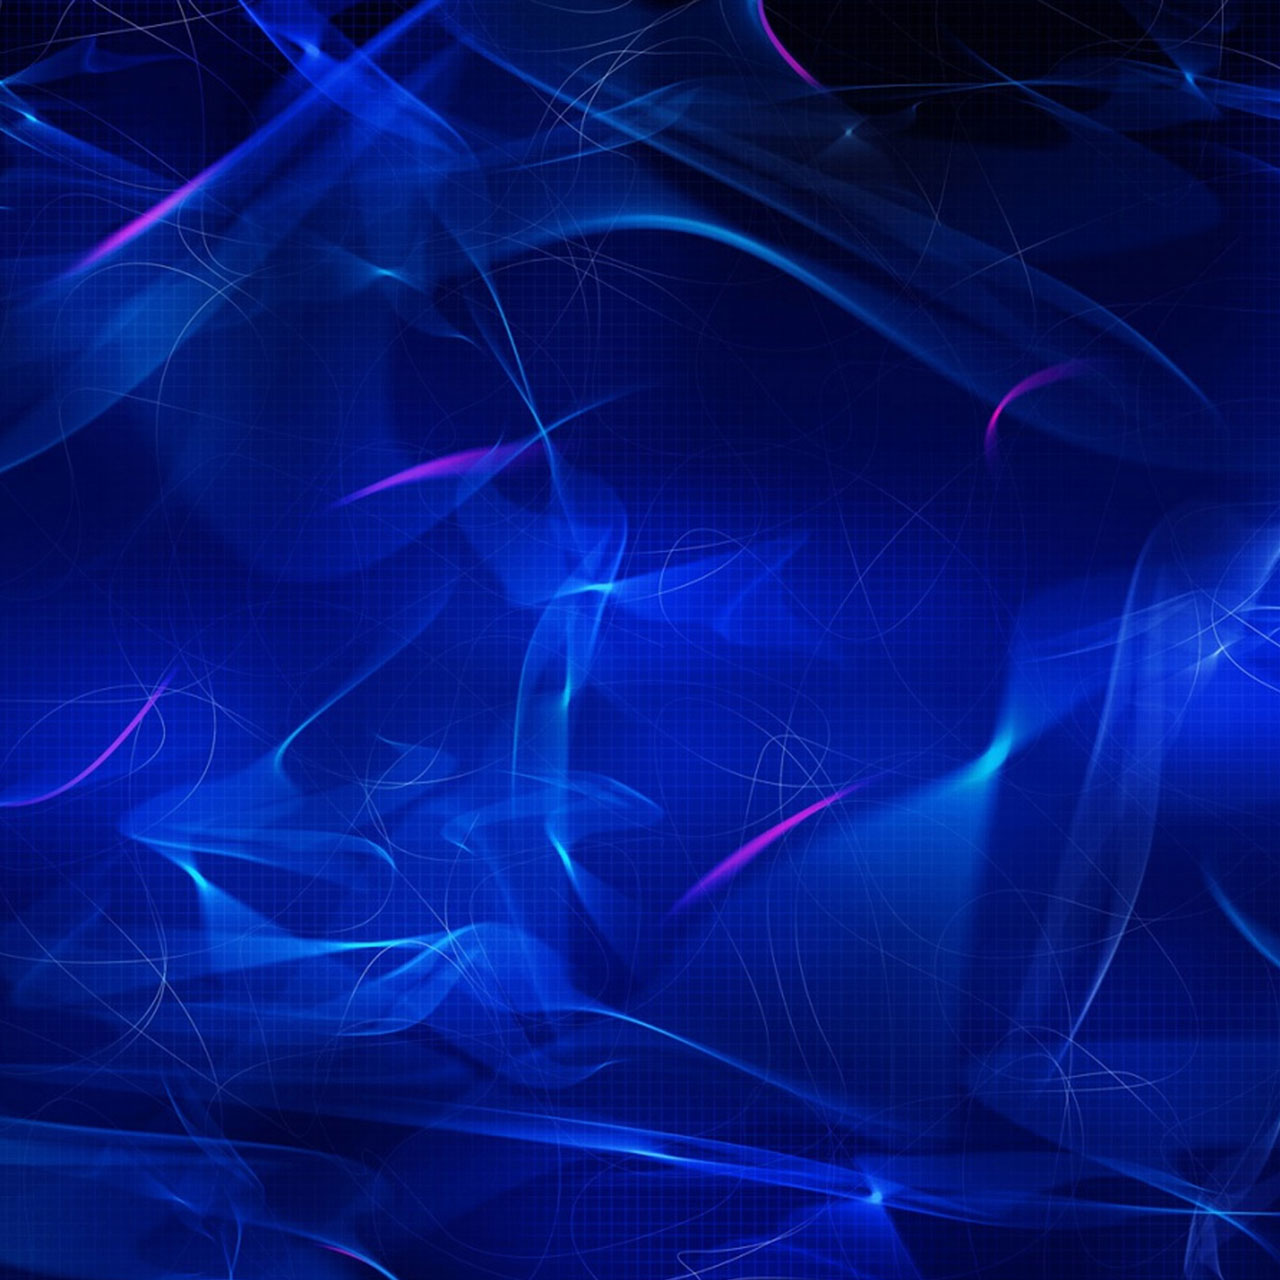 Samsung Galaxy Tab 101 Abstract Blue wallpapers Samsung 1280x1280